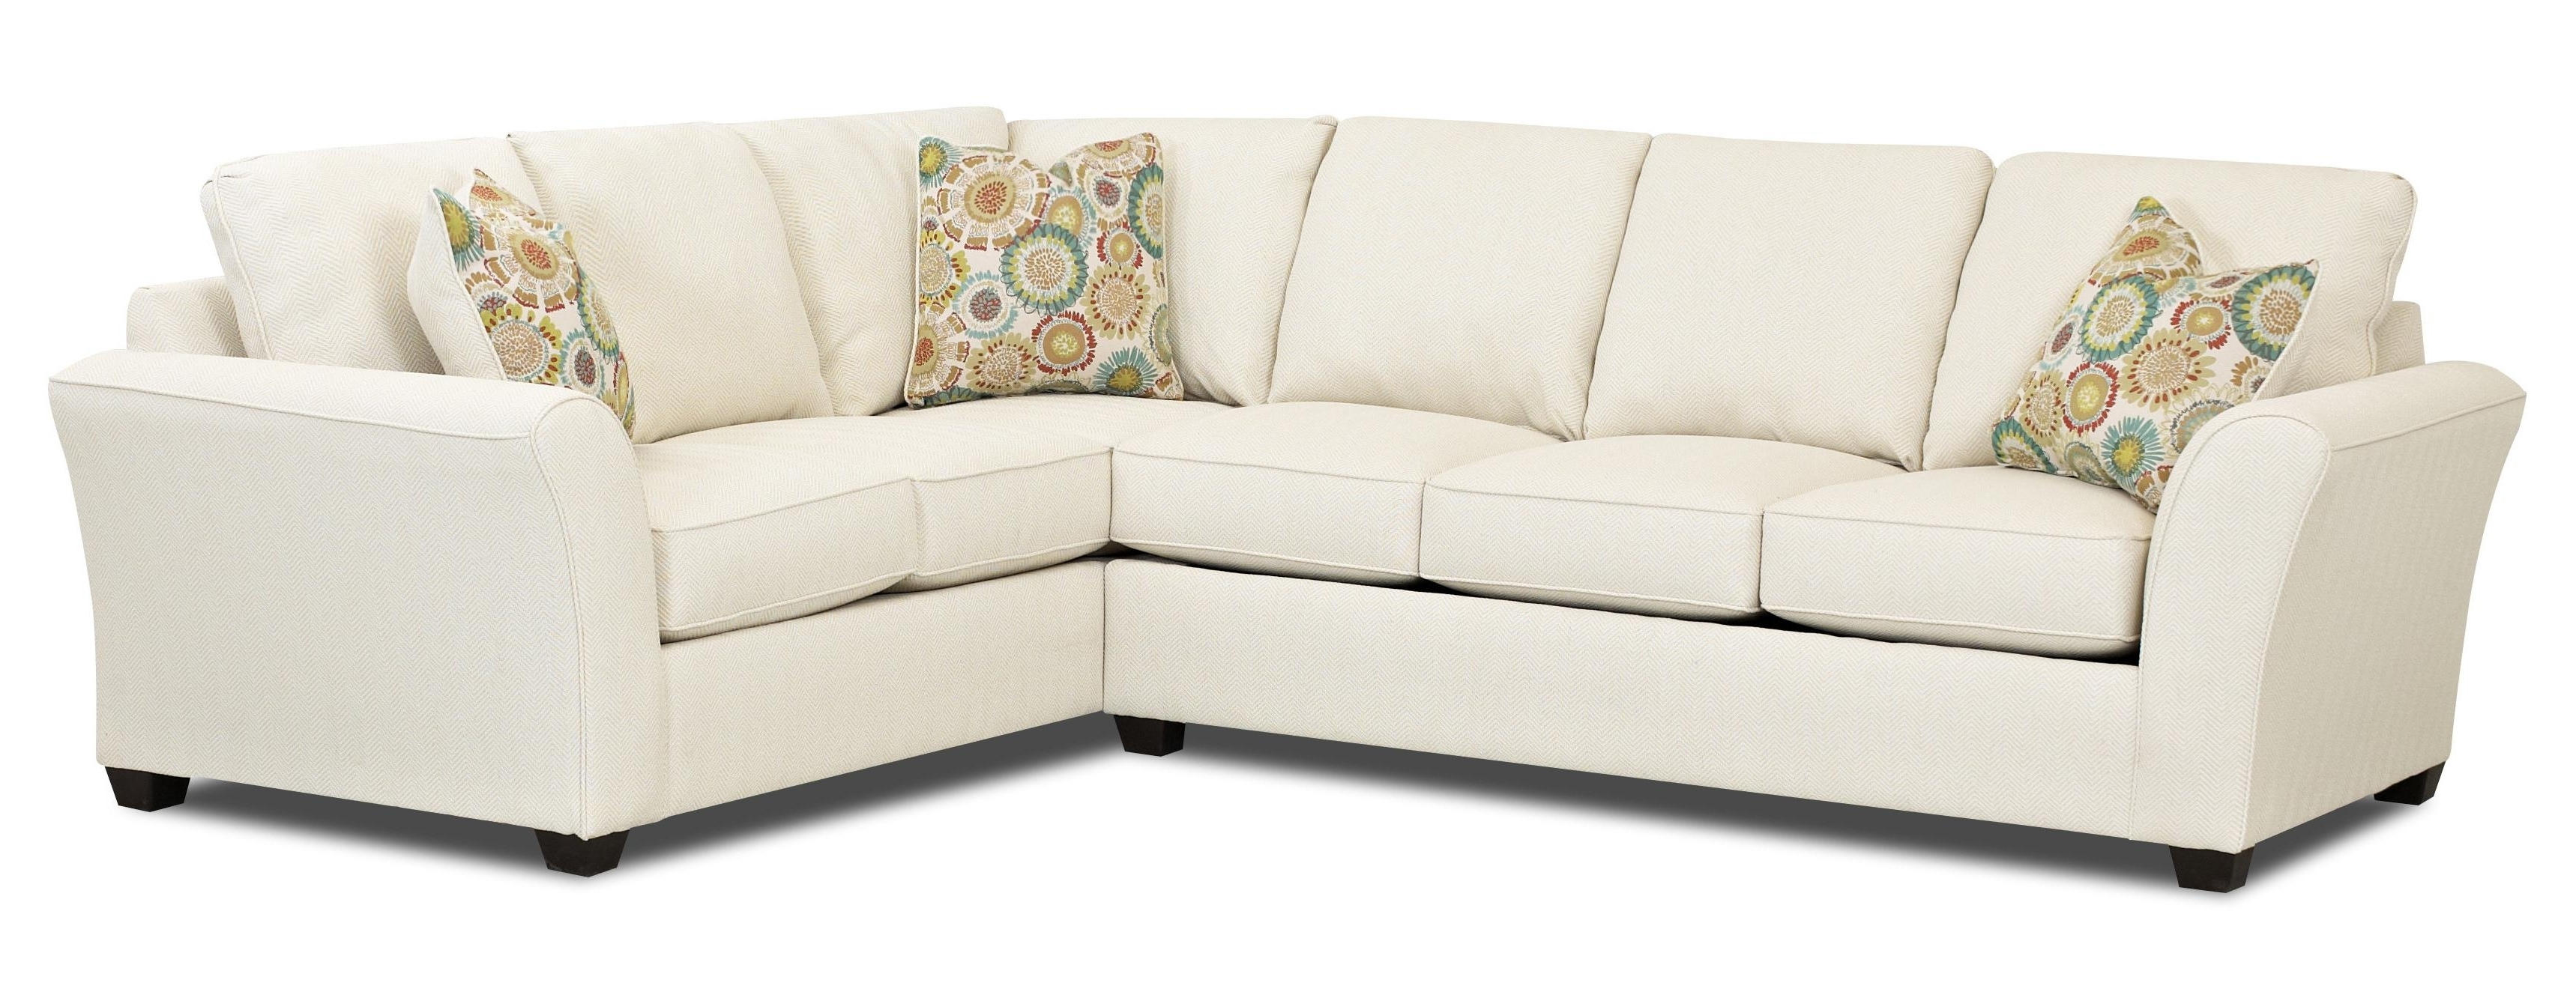 Sectional Sofas With Sleeper Regarding Current Transitional Sectional Sleeper Sofa With Dreamquest Mattress (View 10 of 20)